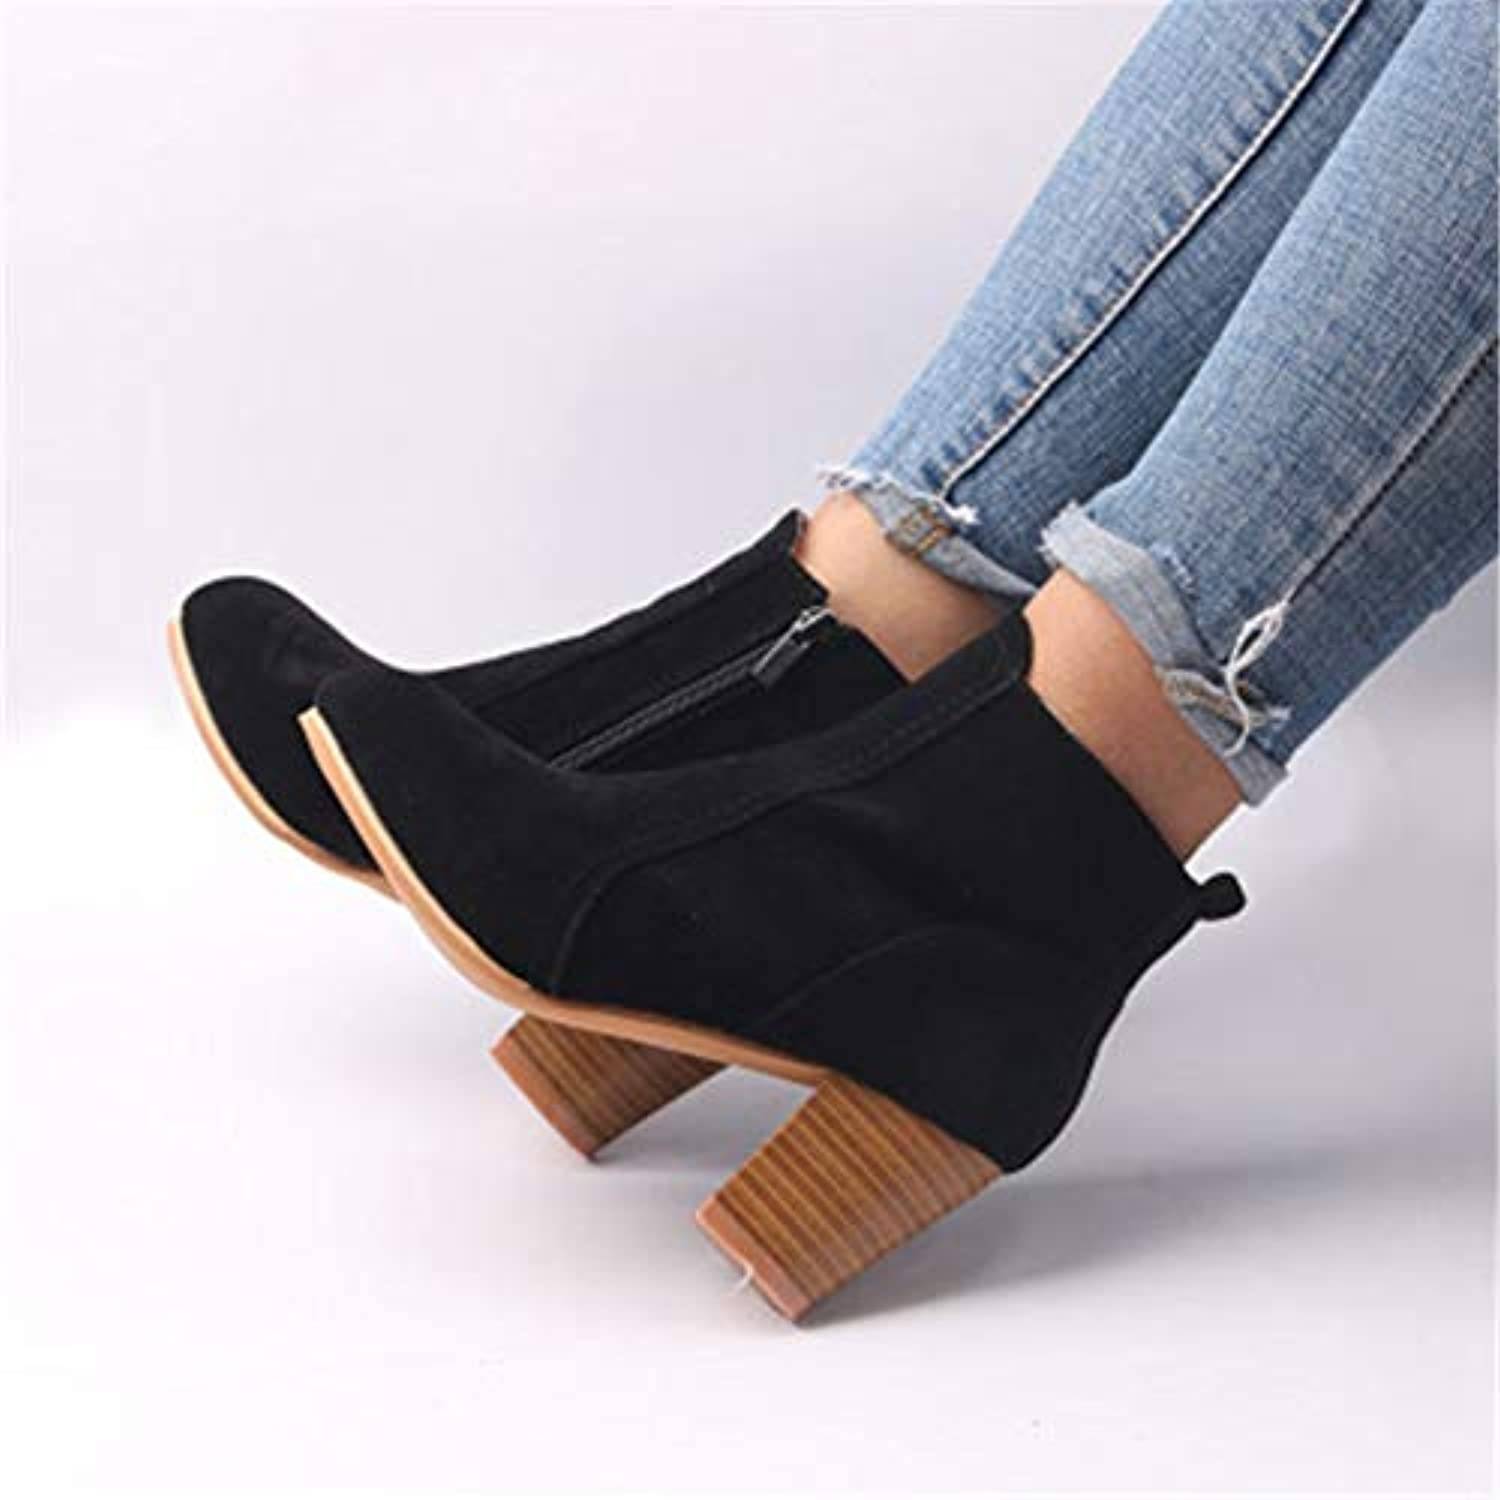 T-JULY Fashion Wild Thick Heel Boots Women with European and American Autumn Winter Martin Boots